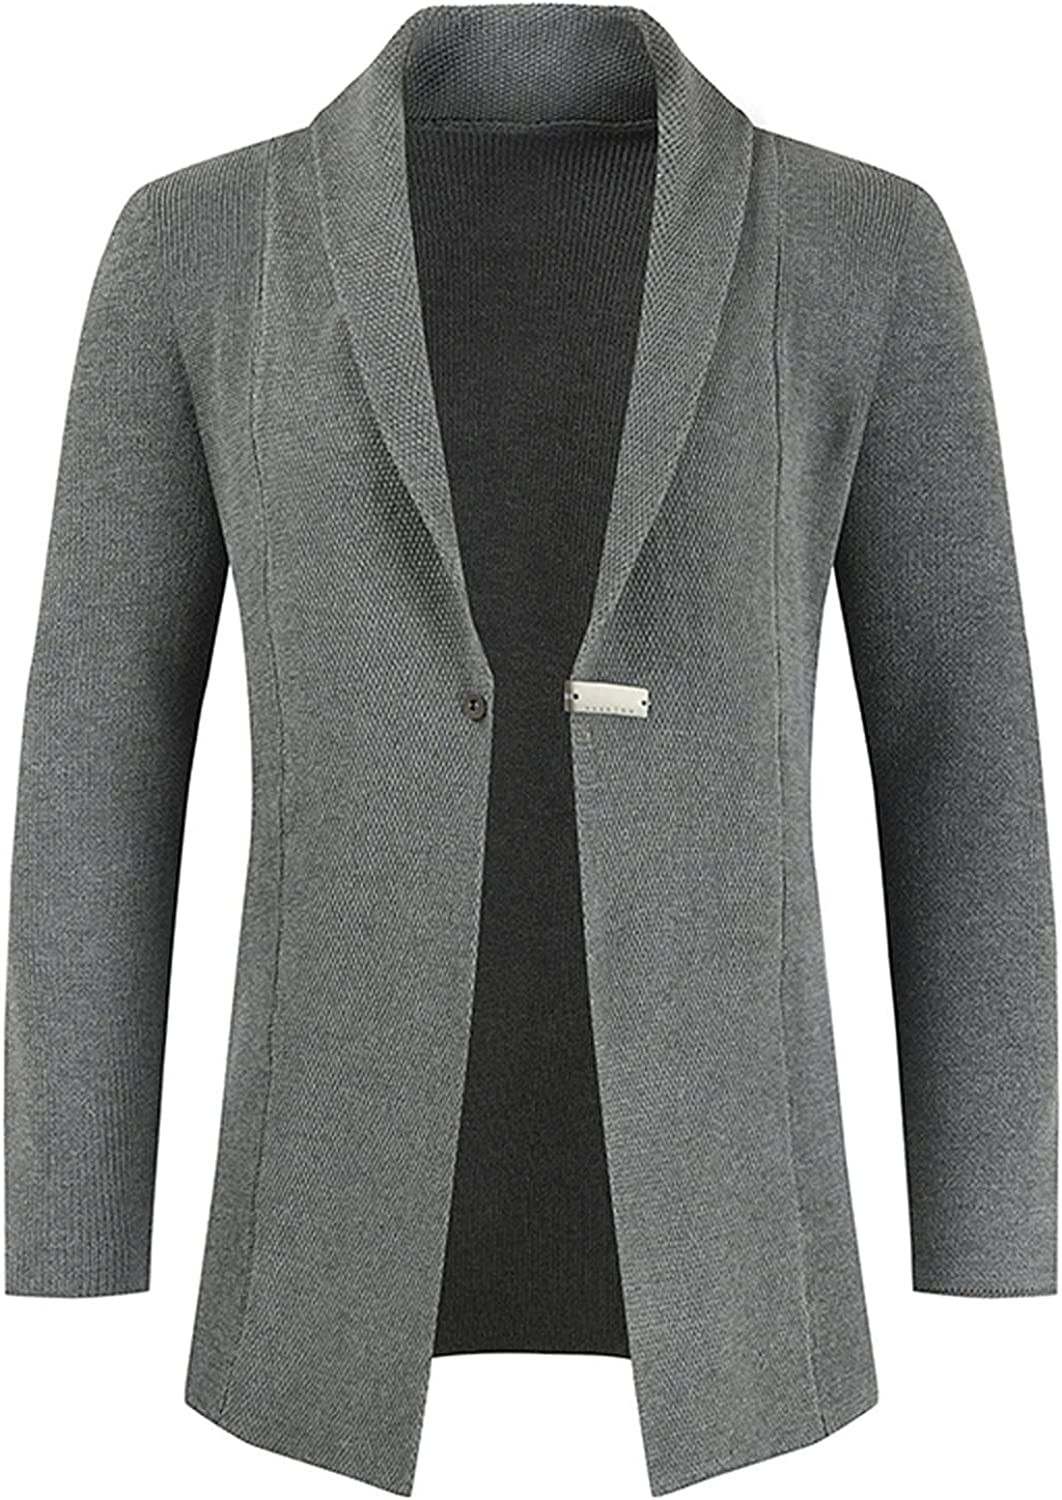 Huangse Mens Shawl Collar Knitted Cardigan Sweater Slim Fit One Button Snap Trench Coat Long Sleeve Knit Coat Jacket